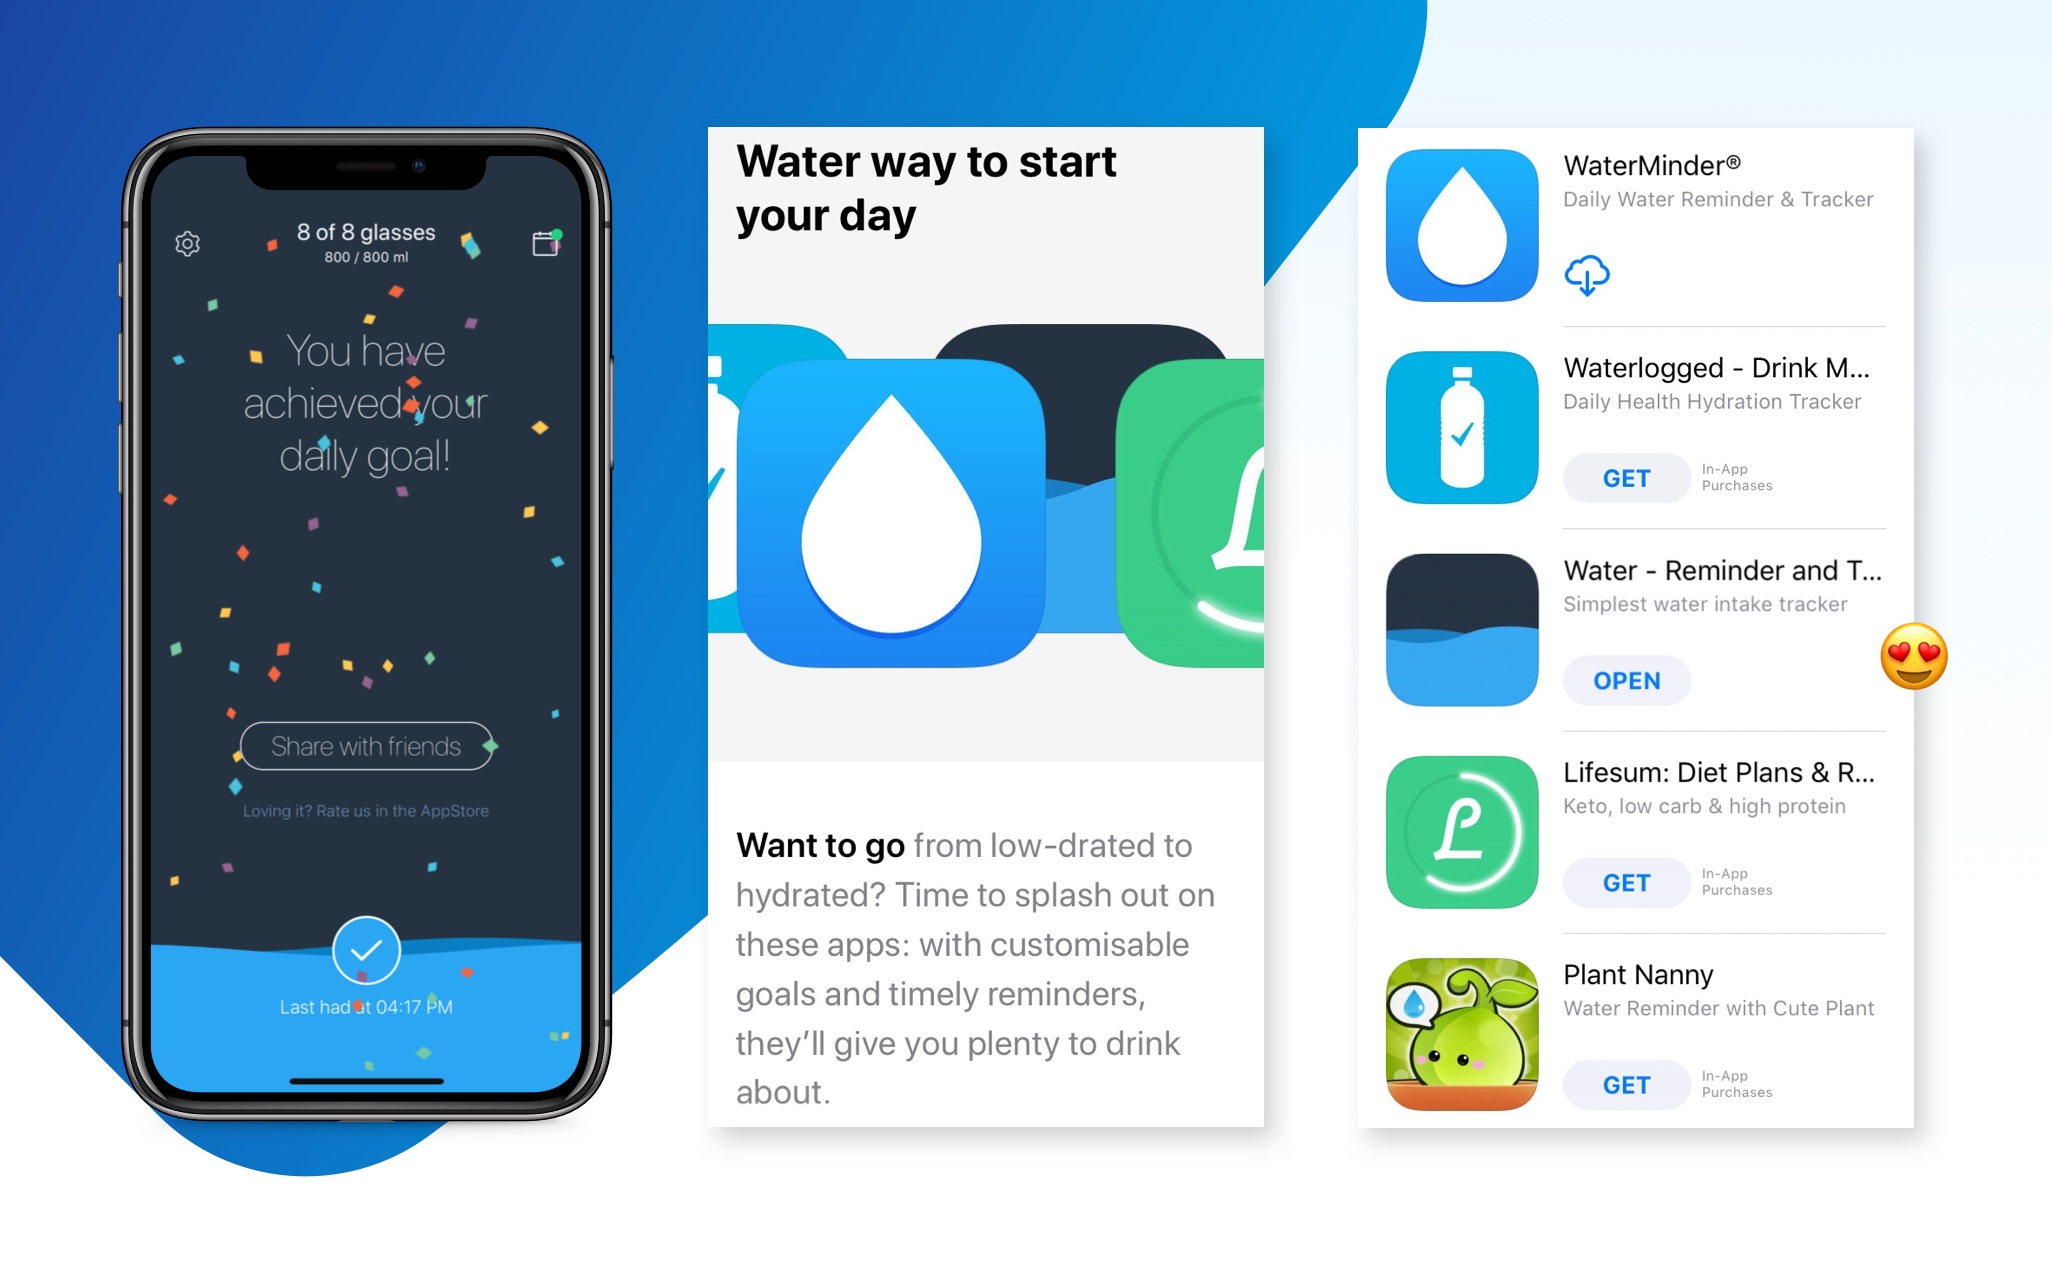 Water - App Store Feature@1x.jpg